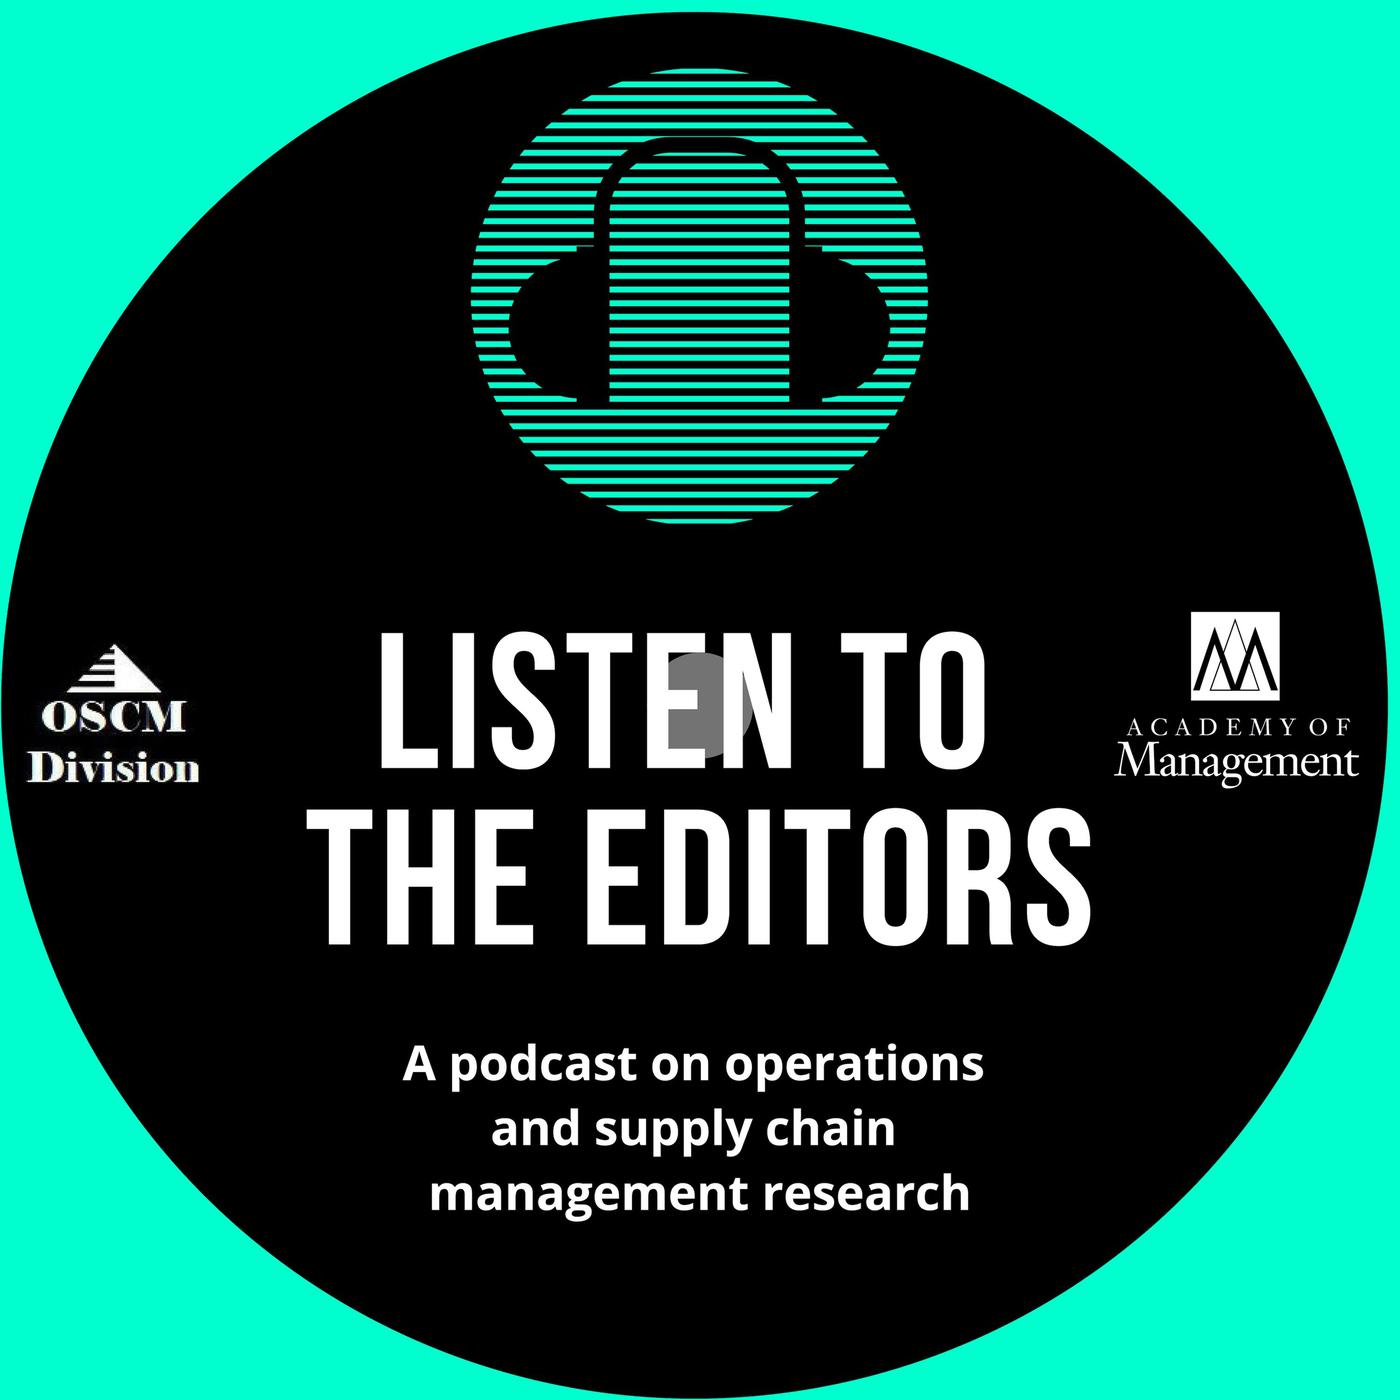 Listen to the Editors (podcast) - OSCM Division | Listen Notes